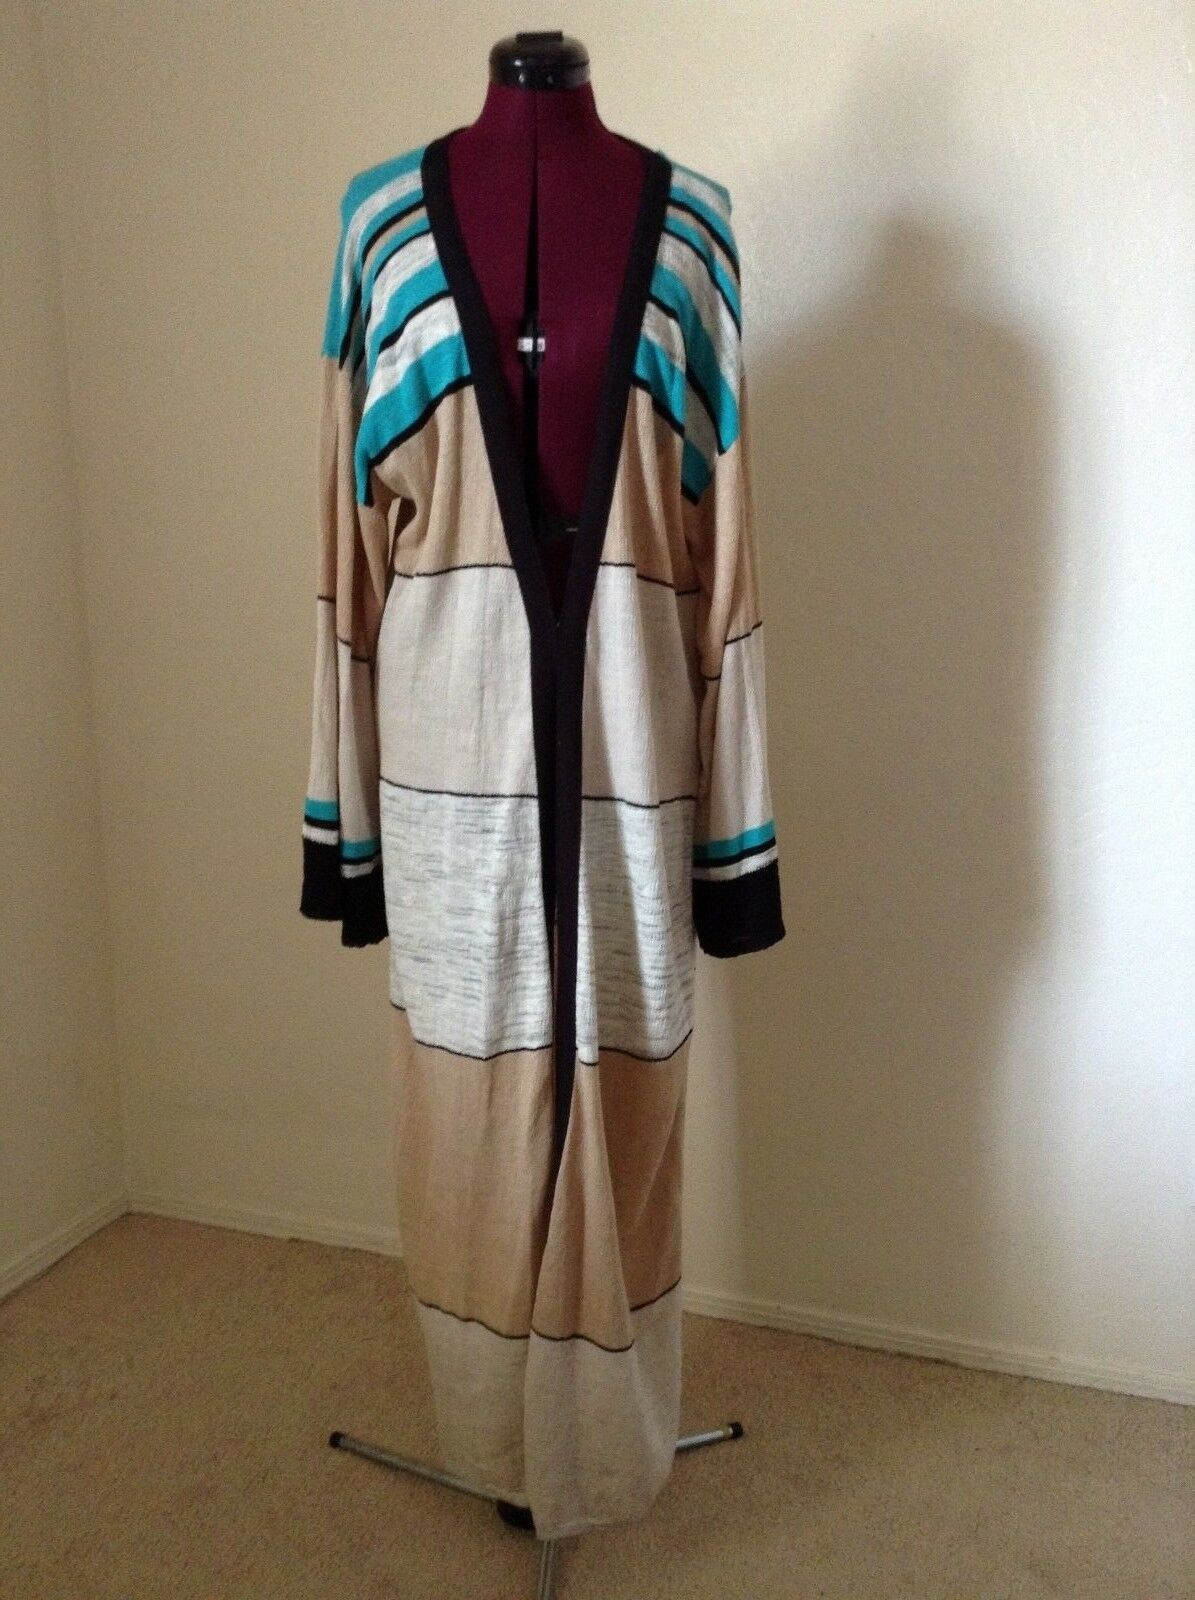 NEW FREE PEOPLE  168 'Walk The Line' Long CardiganFull LengthLarge